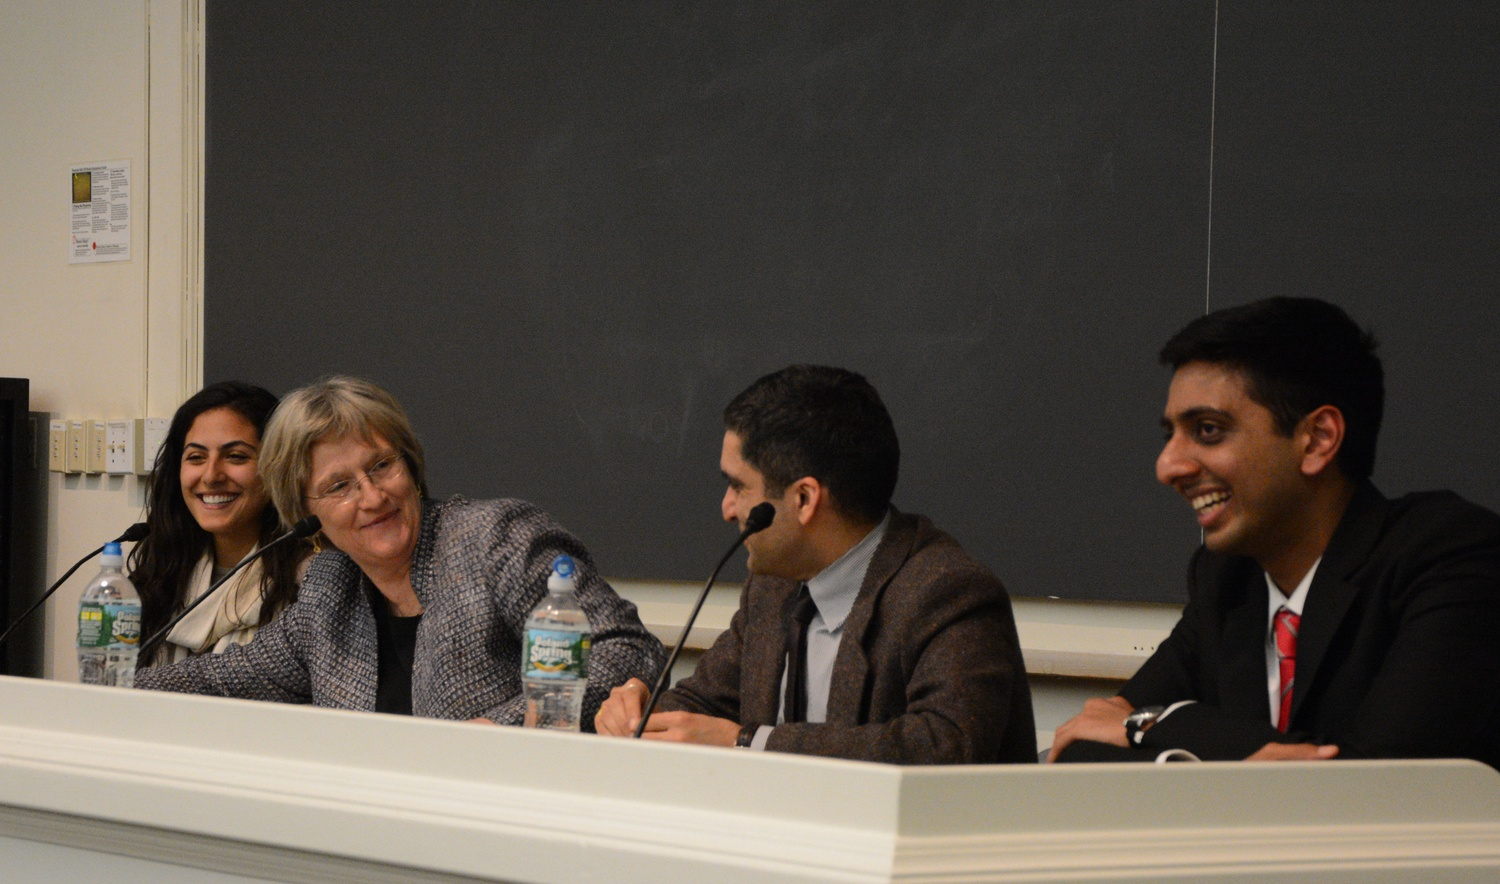 Undergraduate Council leaders Ava Nasrollahzadeh '16 and Dhruv P. Goyal '16 hold an open forum with President Drew G. Faust and Harvard College Dean Rakesh Khurana Tuesday night. Students spoke about a range of issues, including campus diversity and inclusion, accessibility for disabled students, and funding for summer and post-graduate public service opportunities.